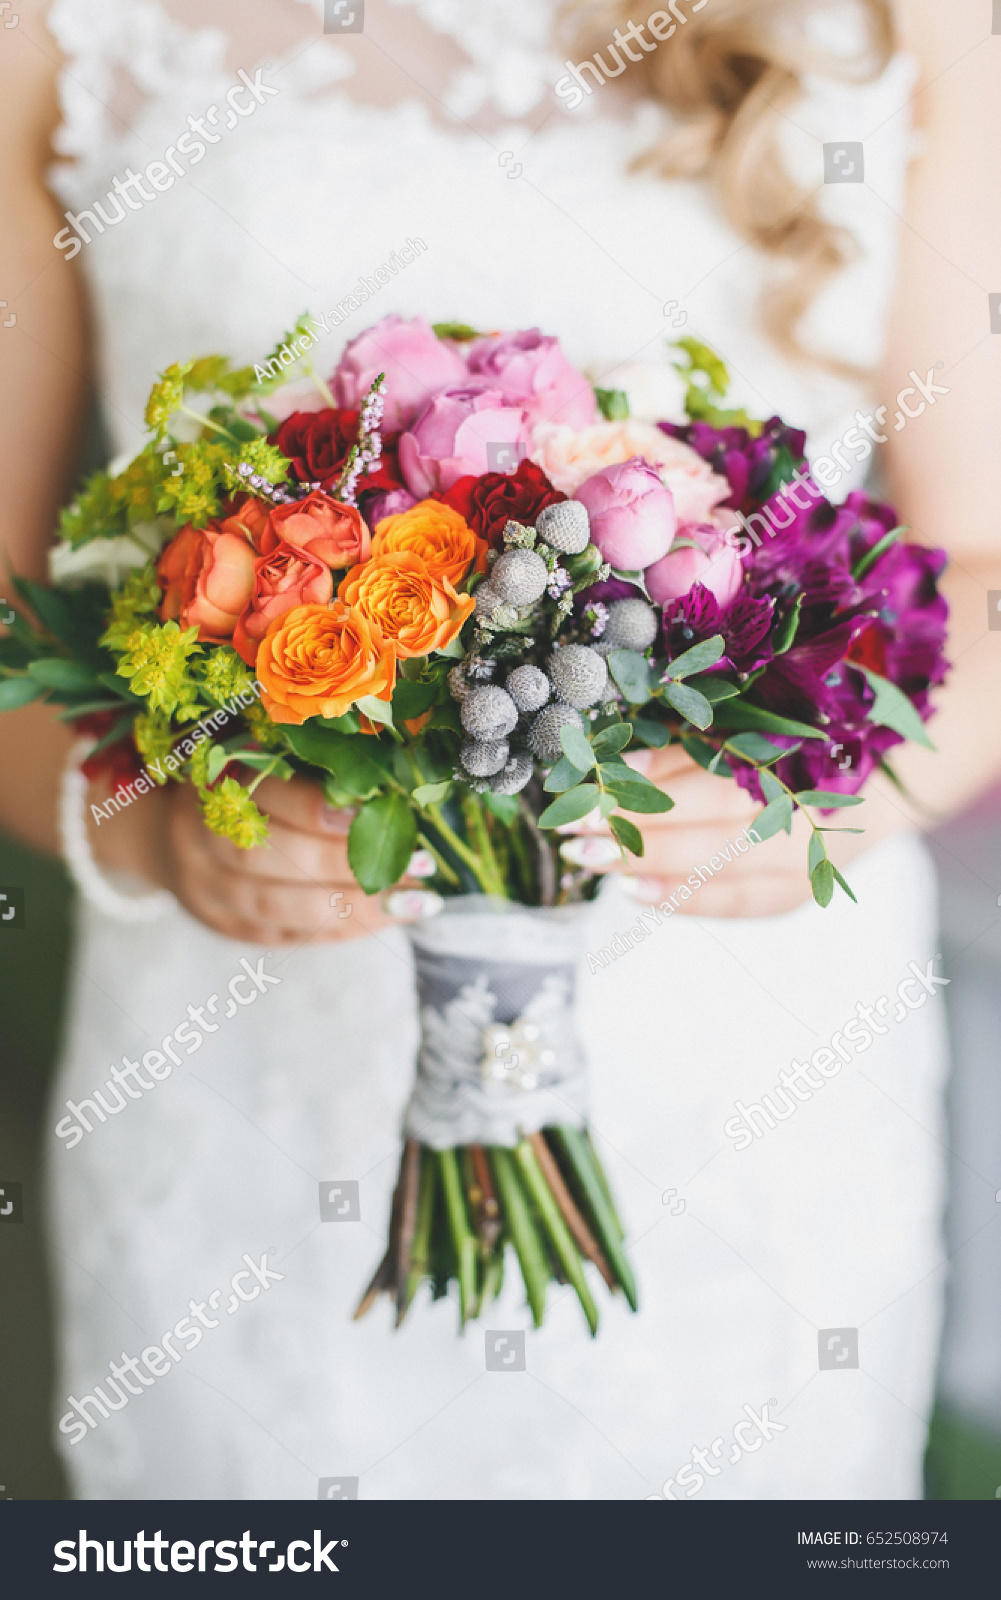 The bride is holding a wedding bouquet from natural flowers ez canvas id 652508974 izmirmasajfo